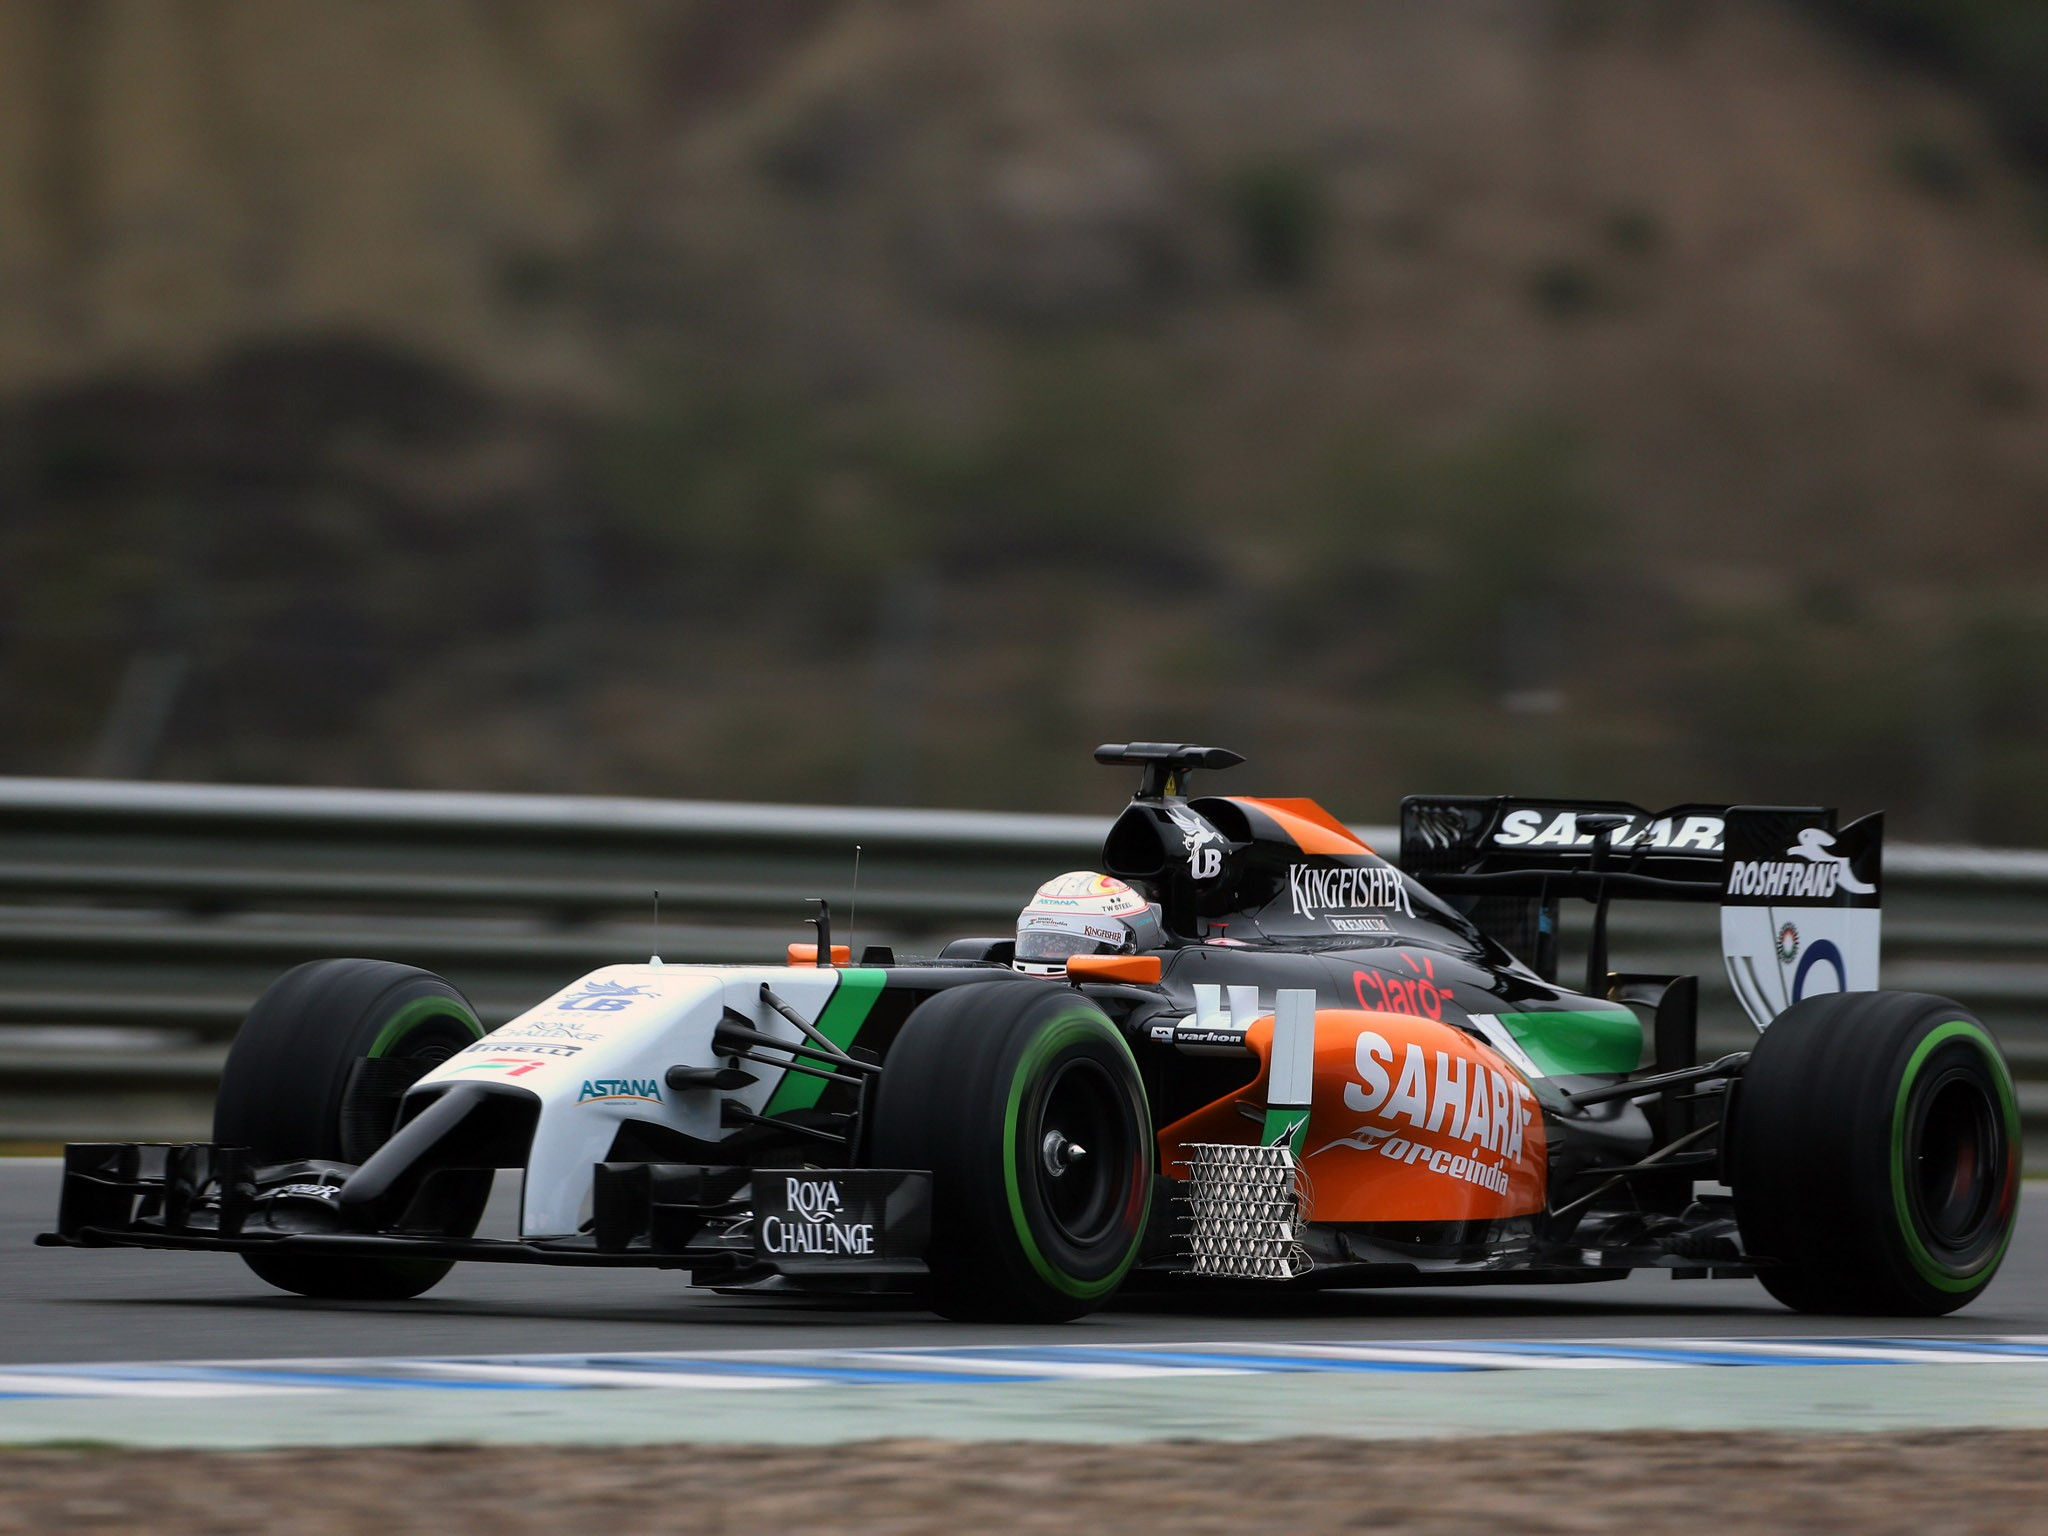 Force India Mercedes V6 vjm07 2014